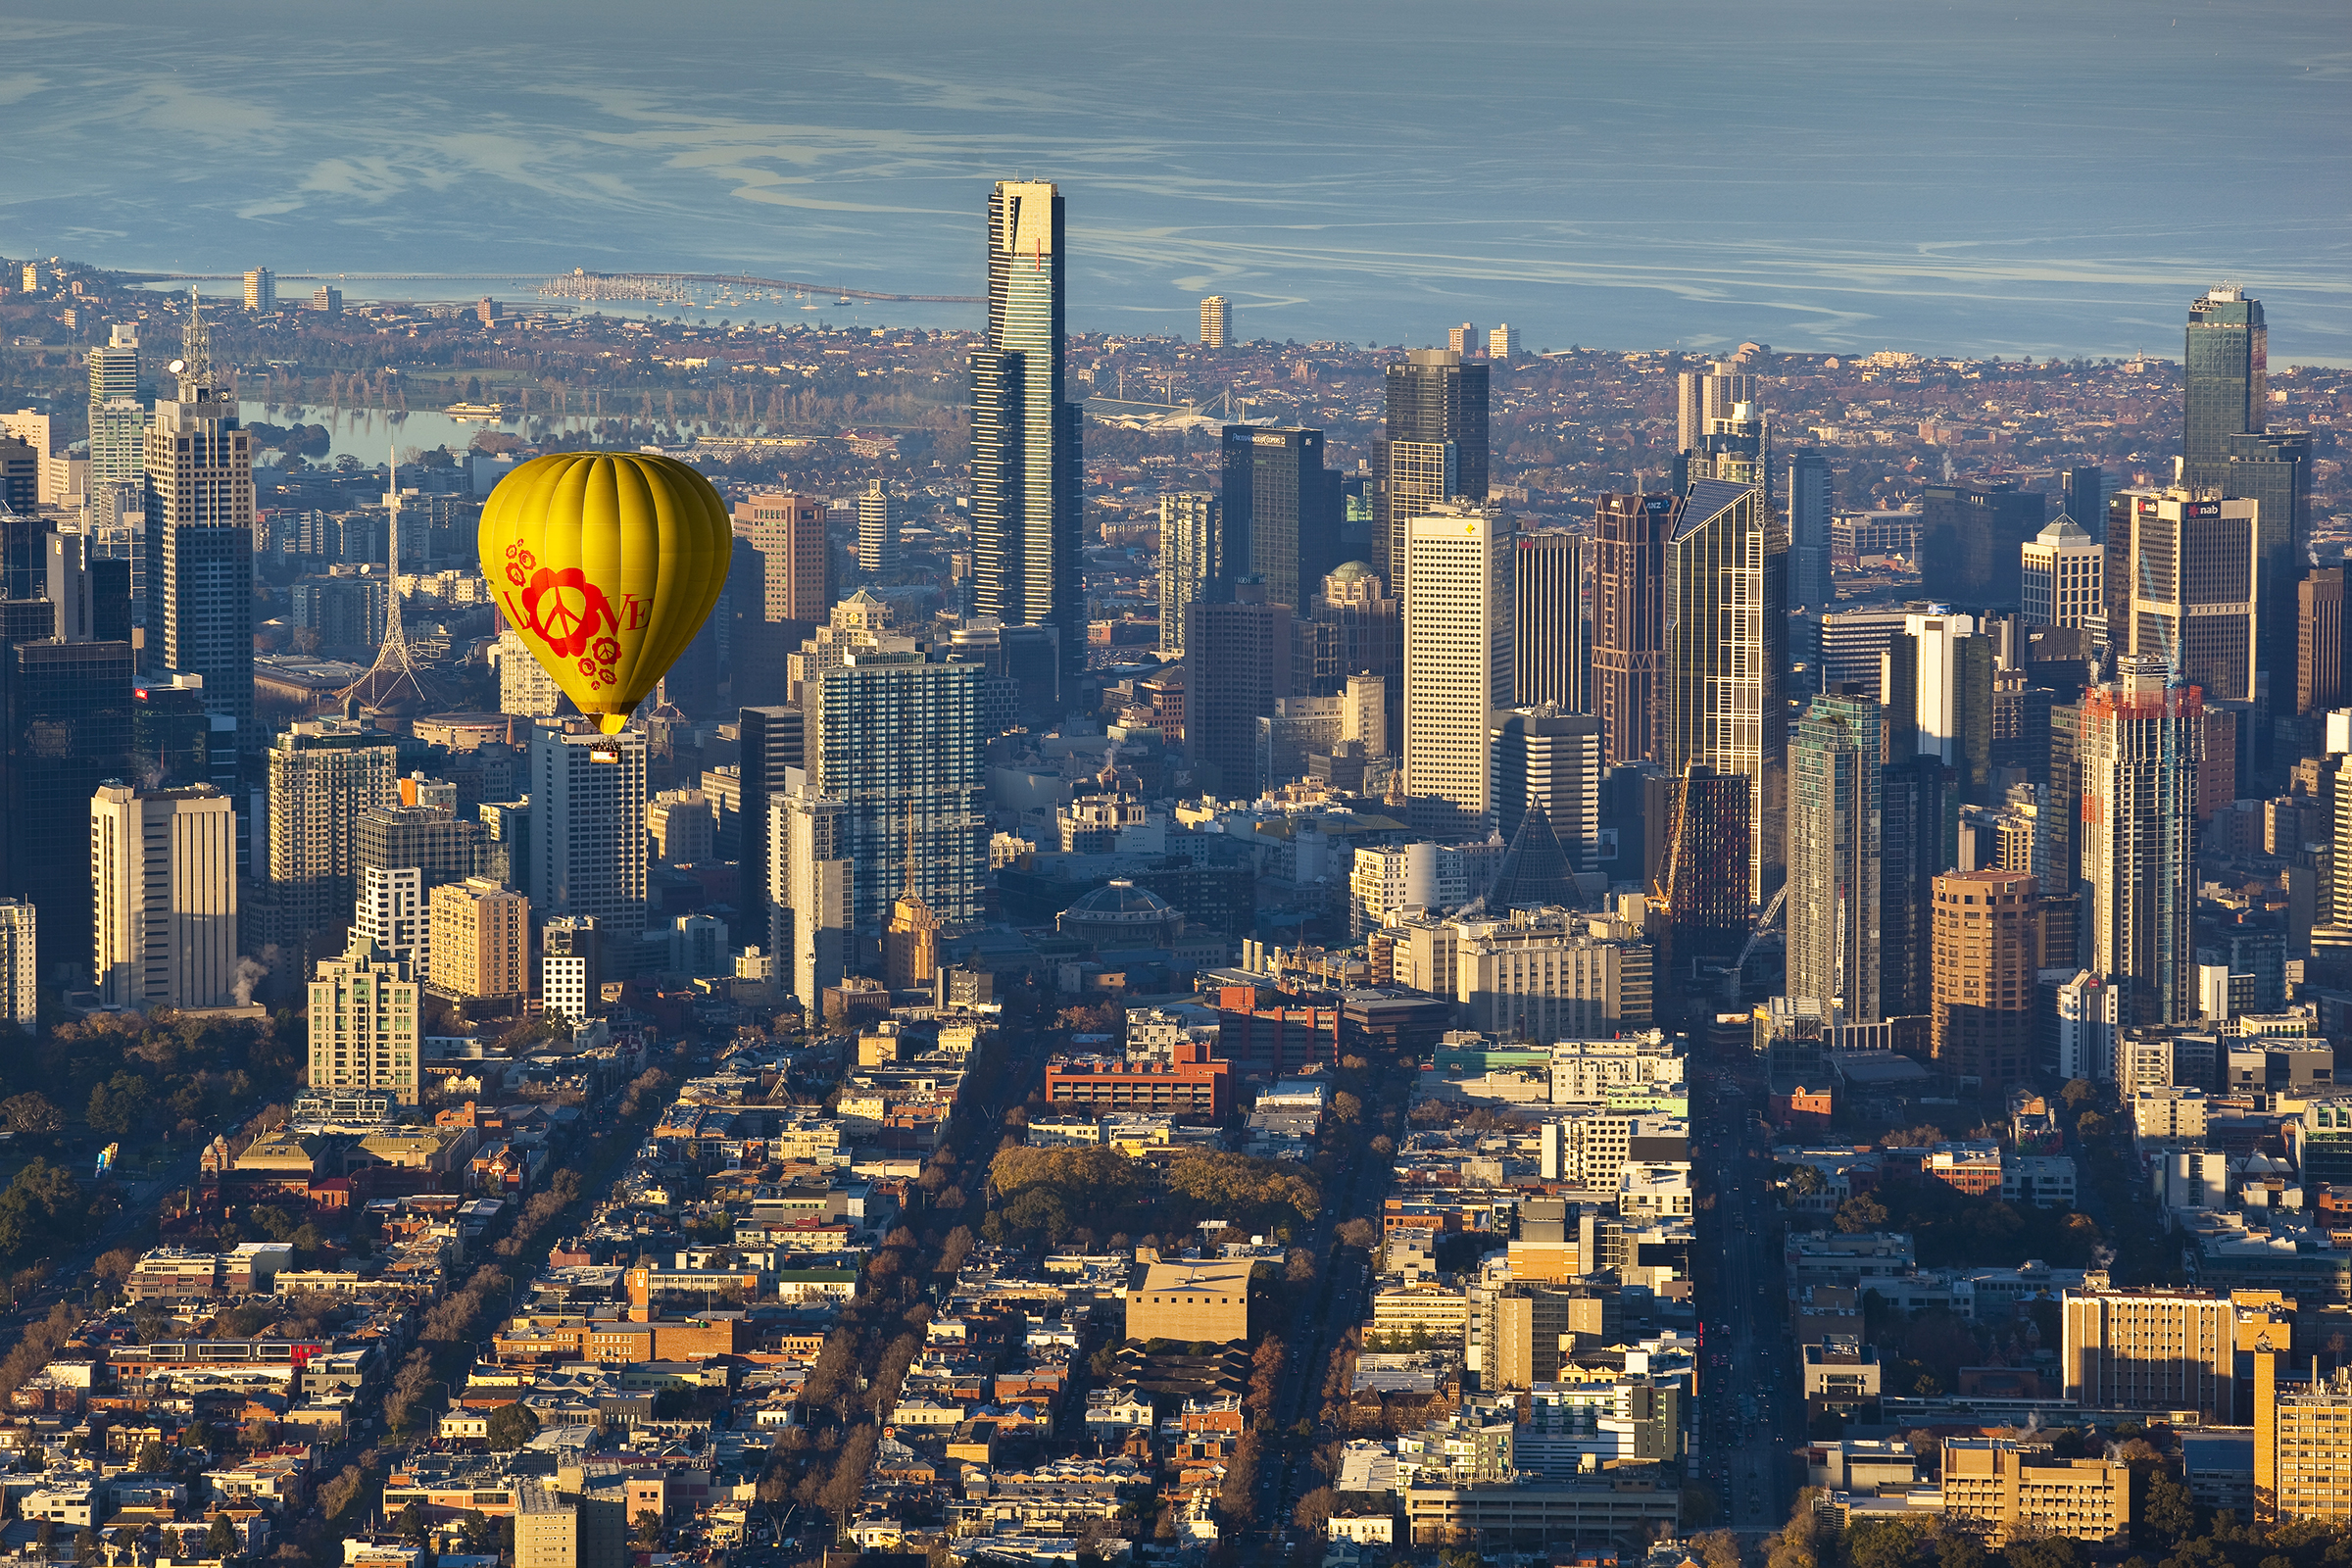 Melbourne hot air balloon ride